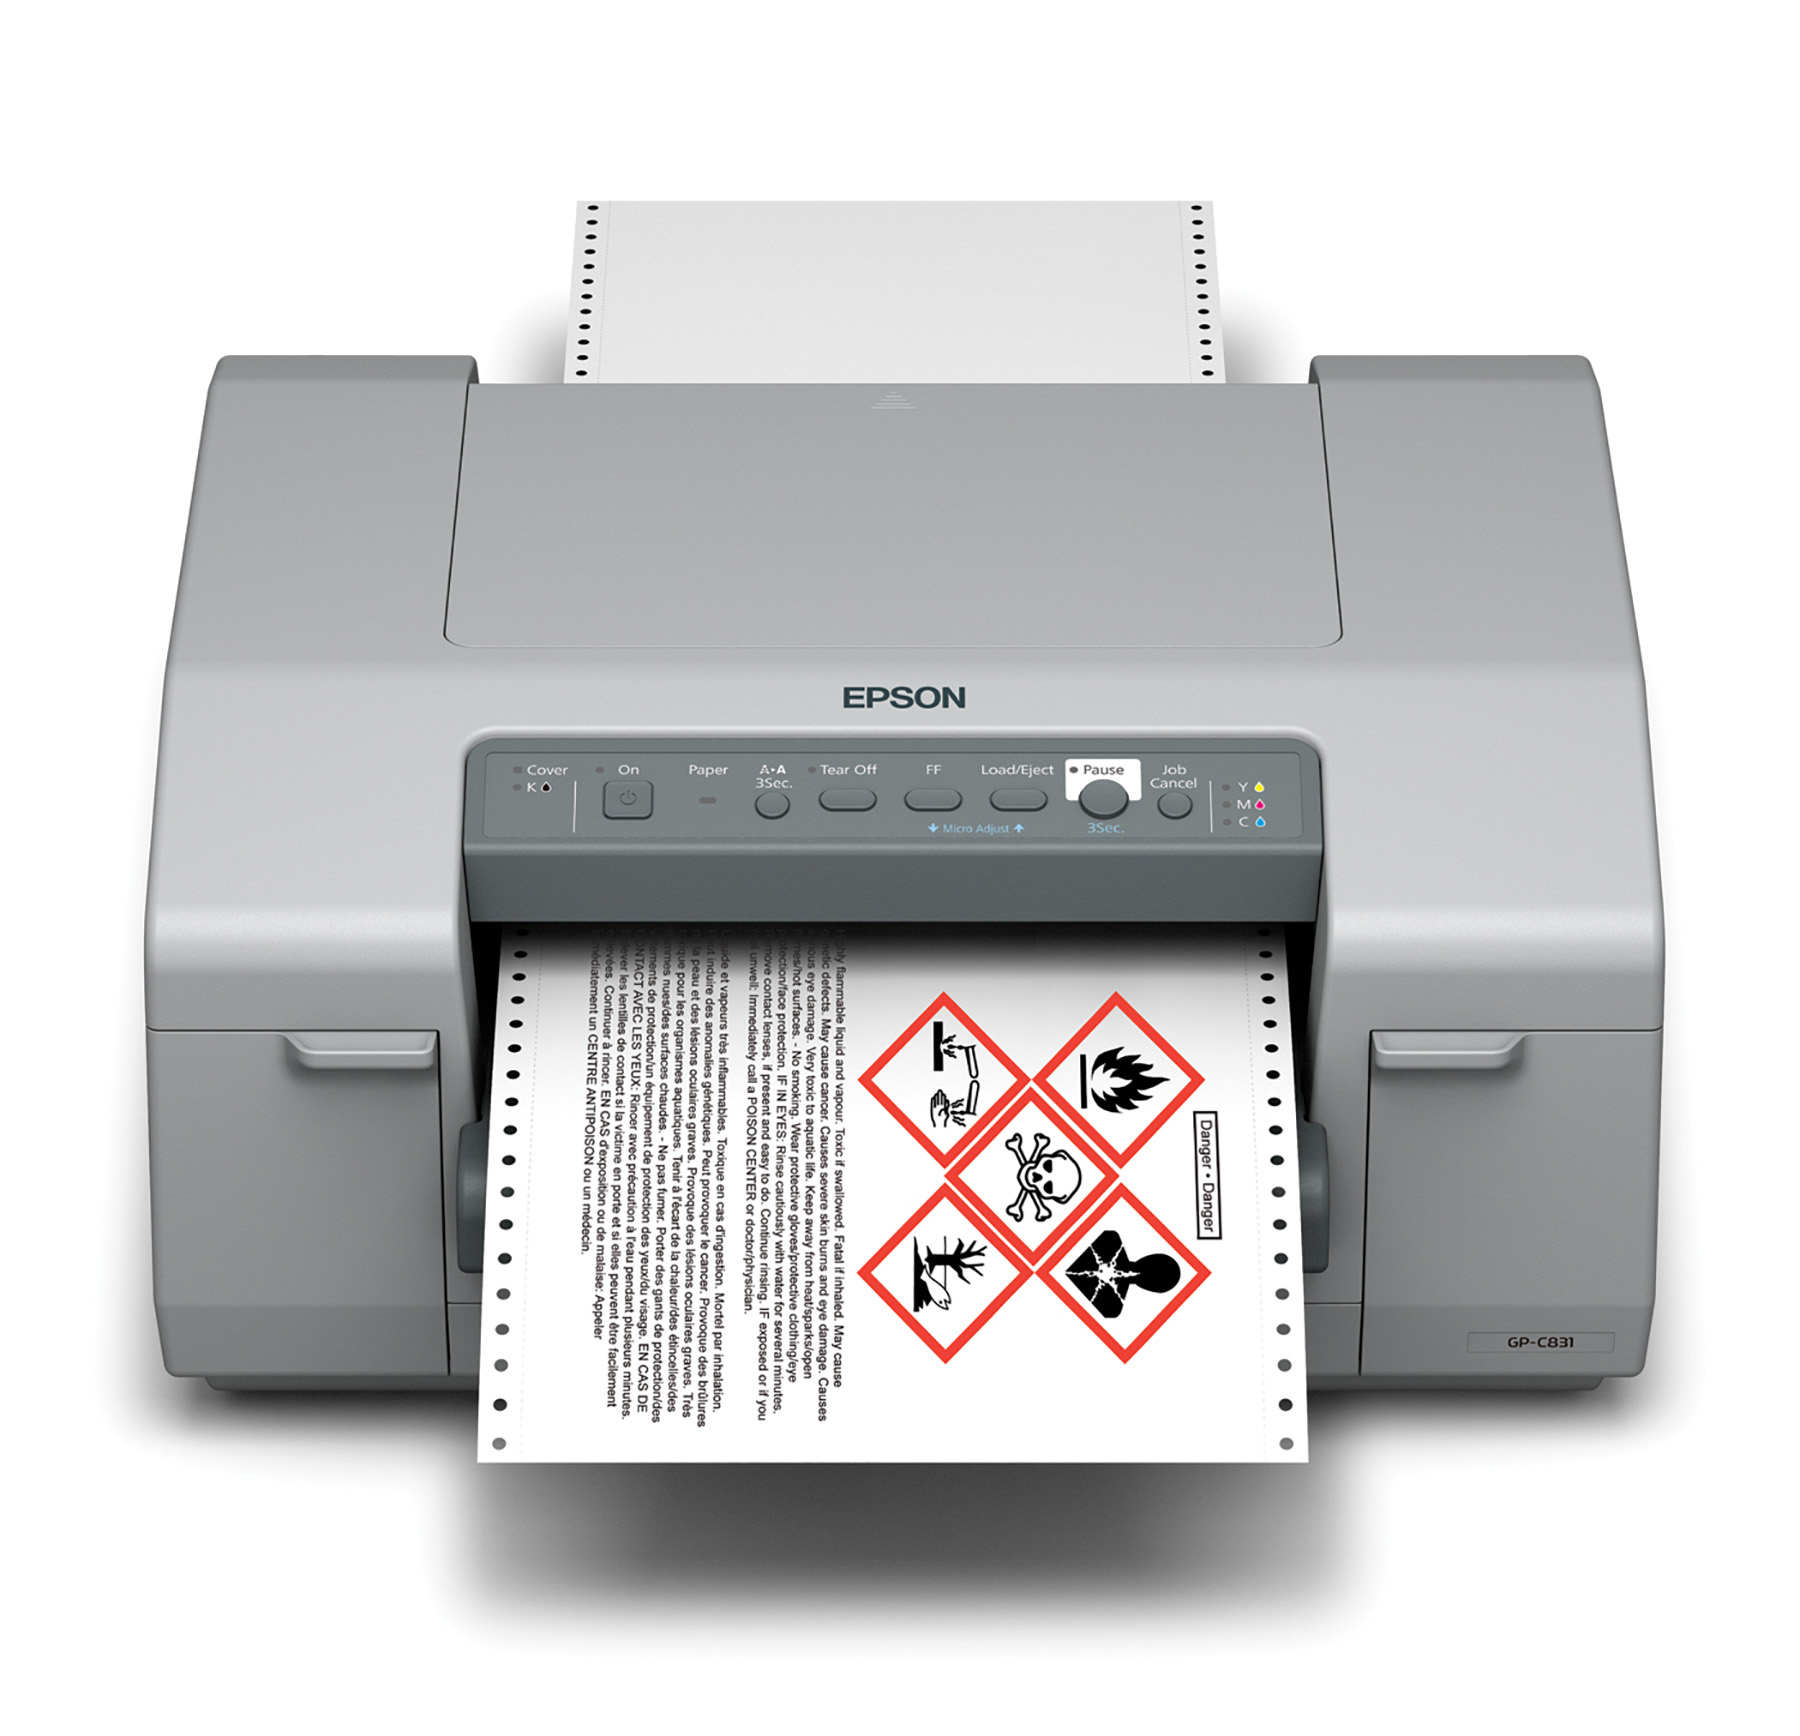 Epson ColorWorks C831 Inkjet Label Printer